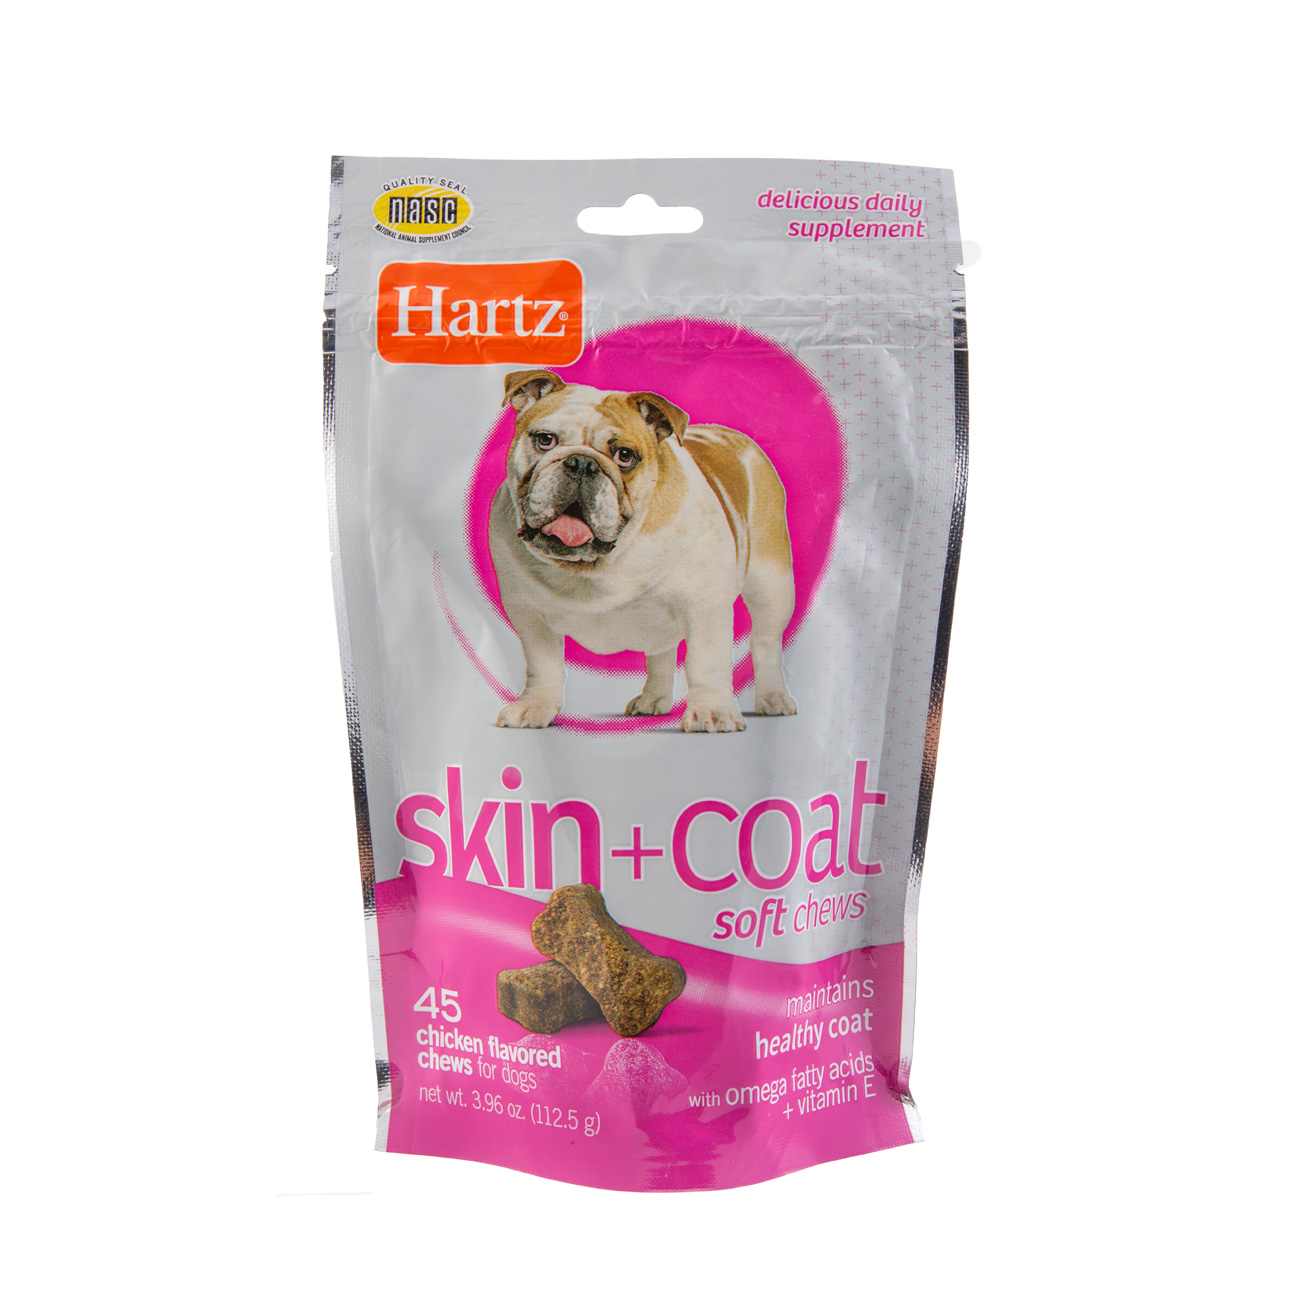 Dog treat supplement for healthy skin and coat, Hartz SKU 3270014728